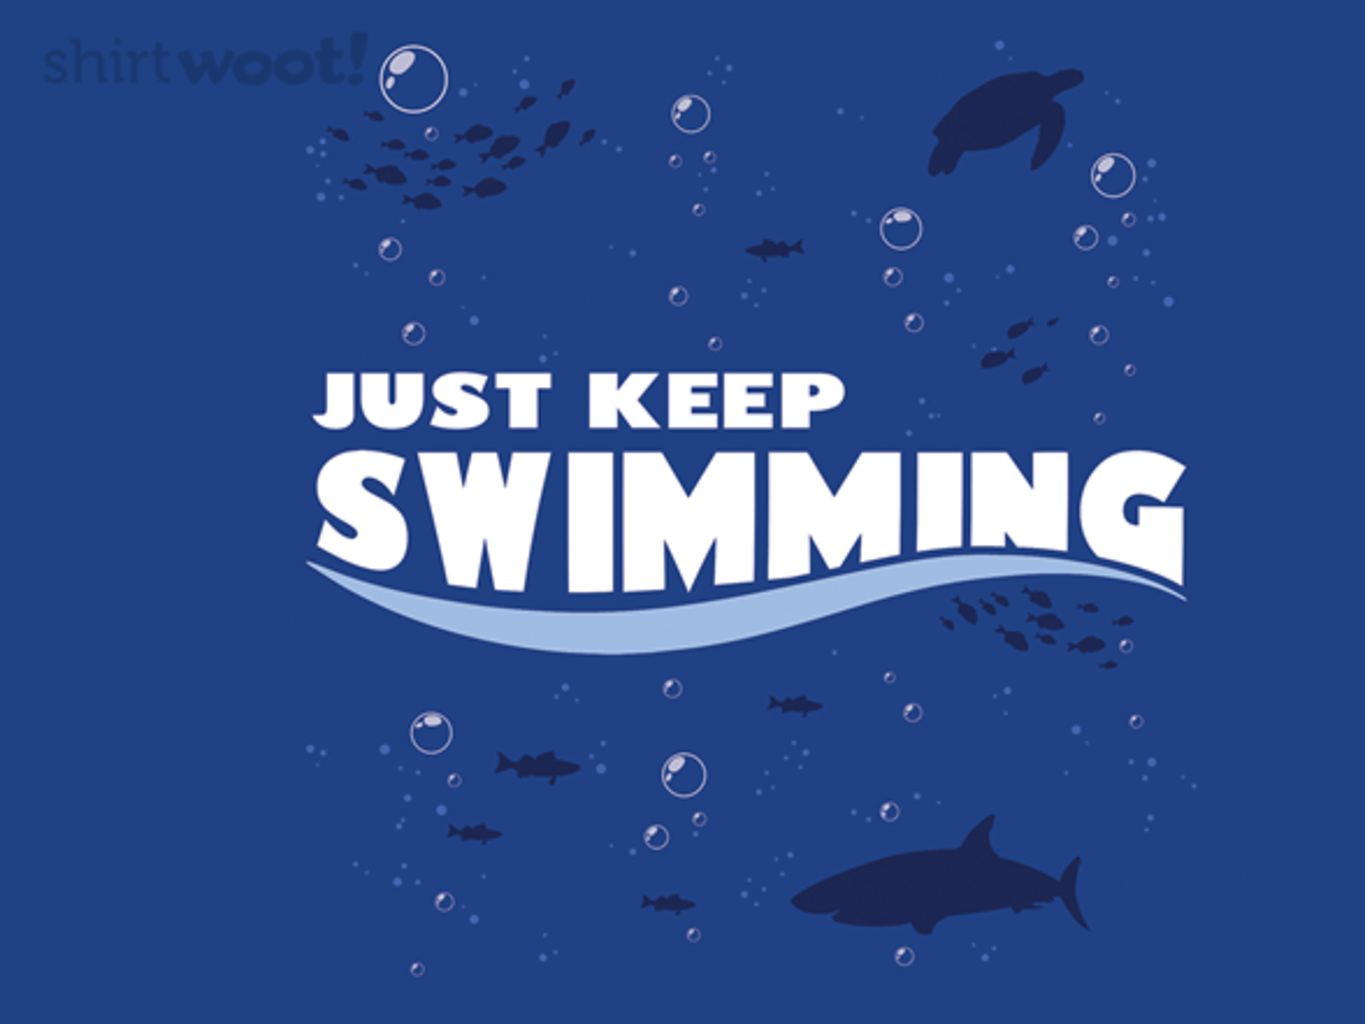 Woot!: Just Keep Swimming - $15.00 + Free shipping